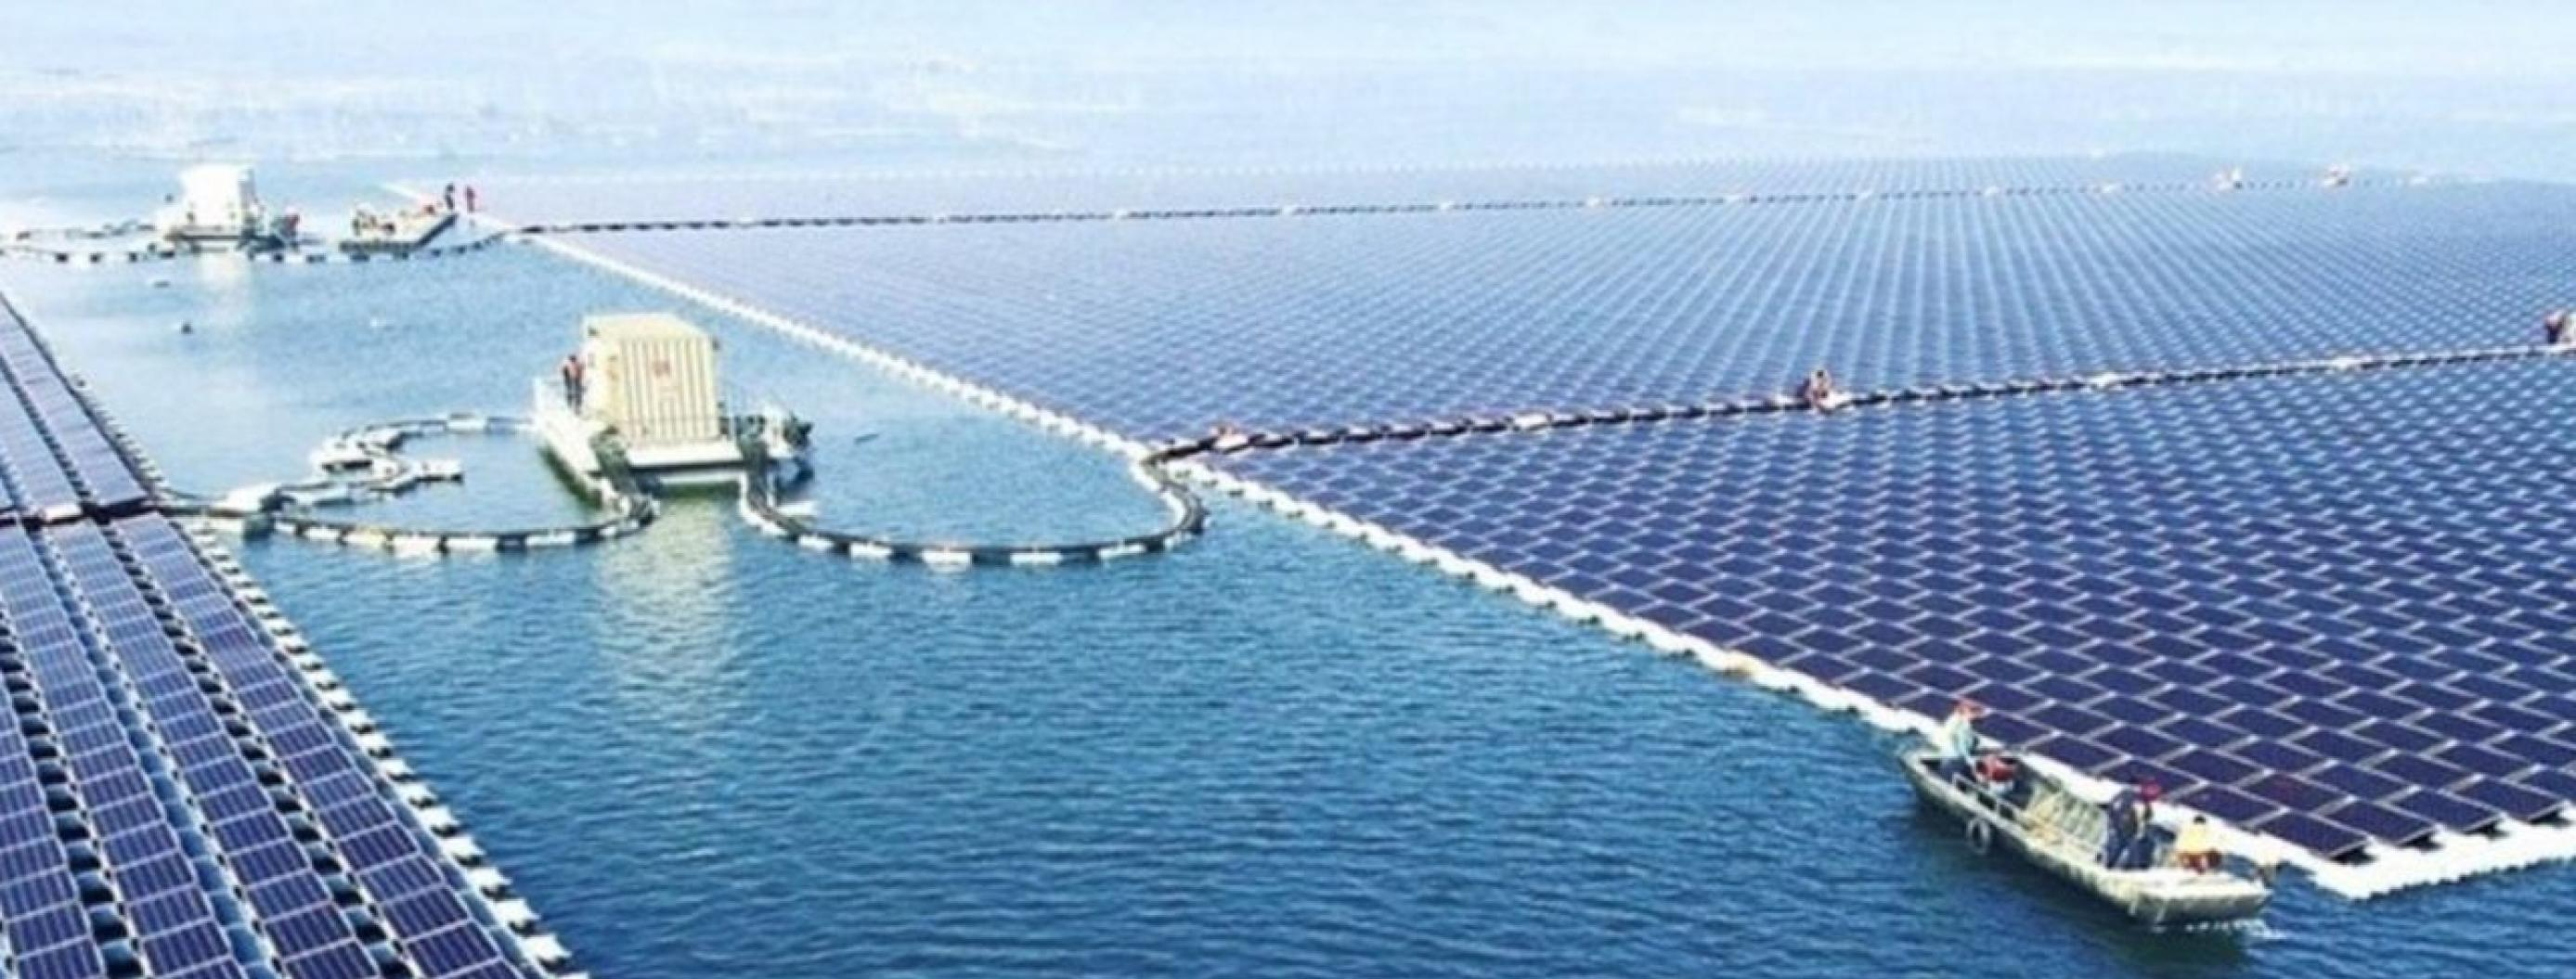 China Builds Massive Floating Solar Farm That Could be the End of Fossil Fuels